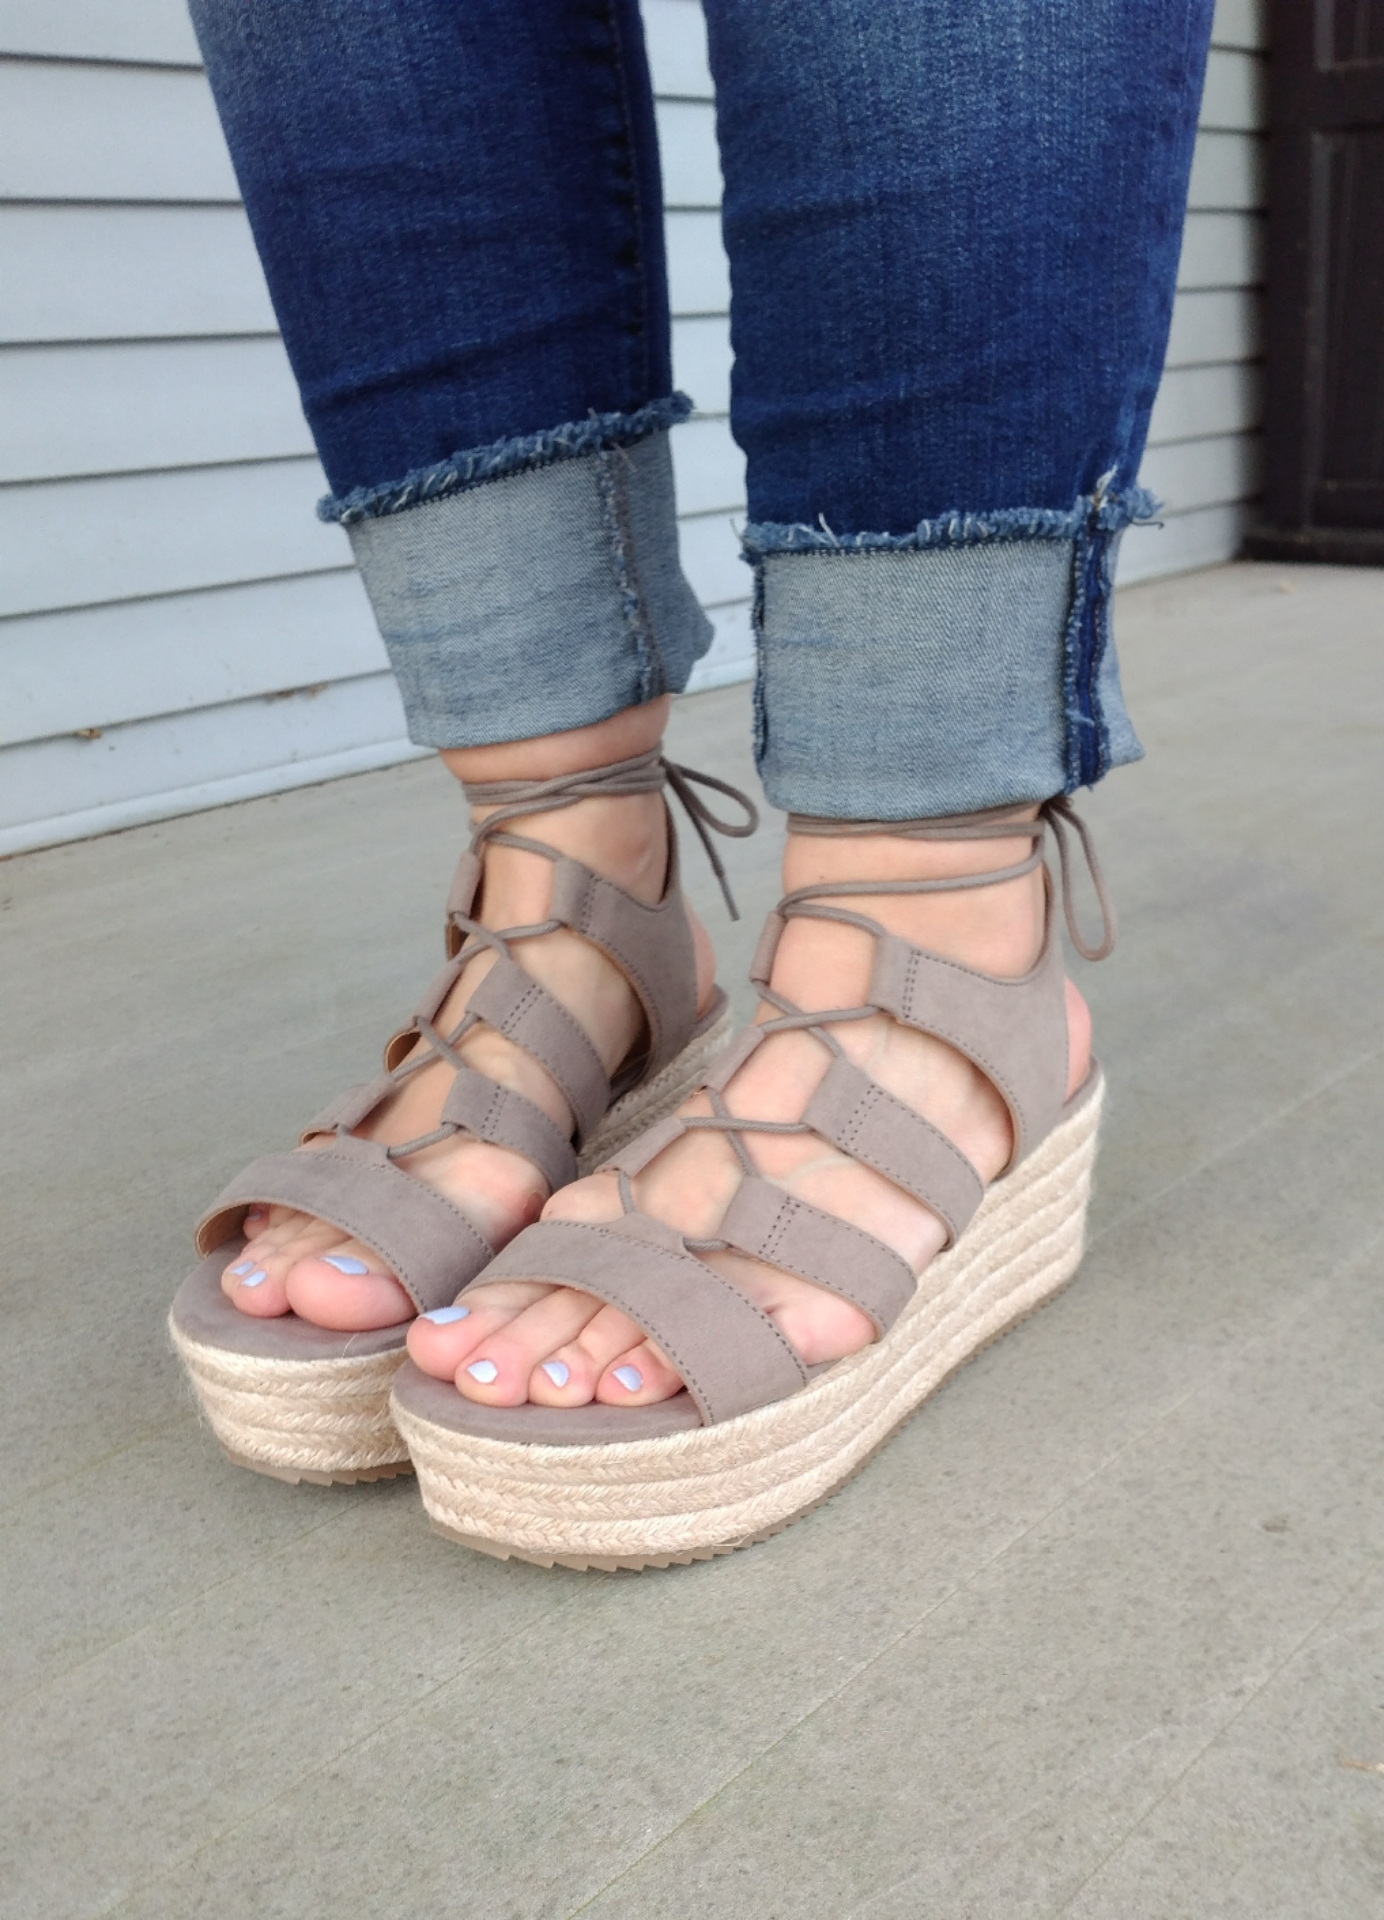 Budget Espadrille Wedge Sandals Everyday Teacher Style